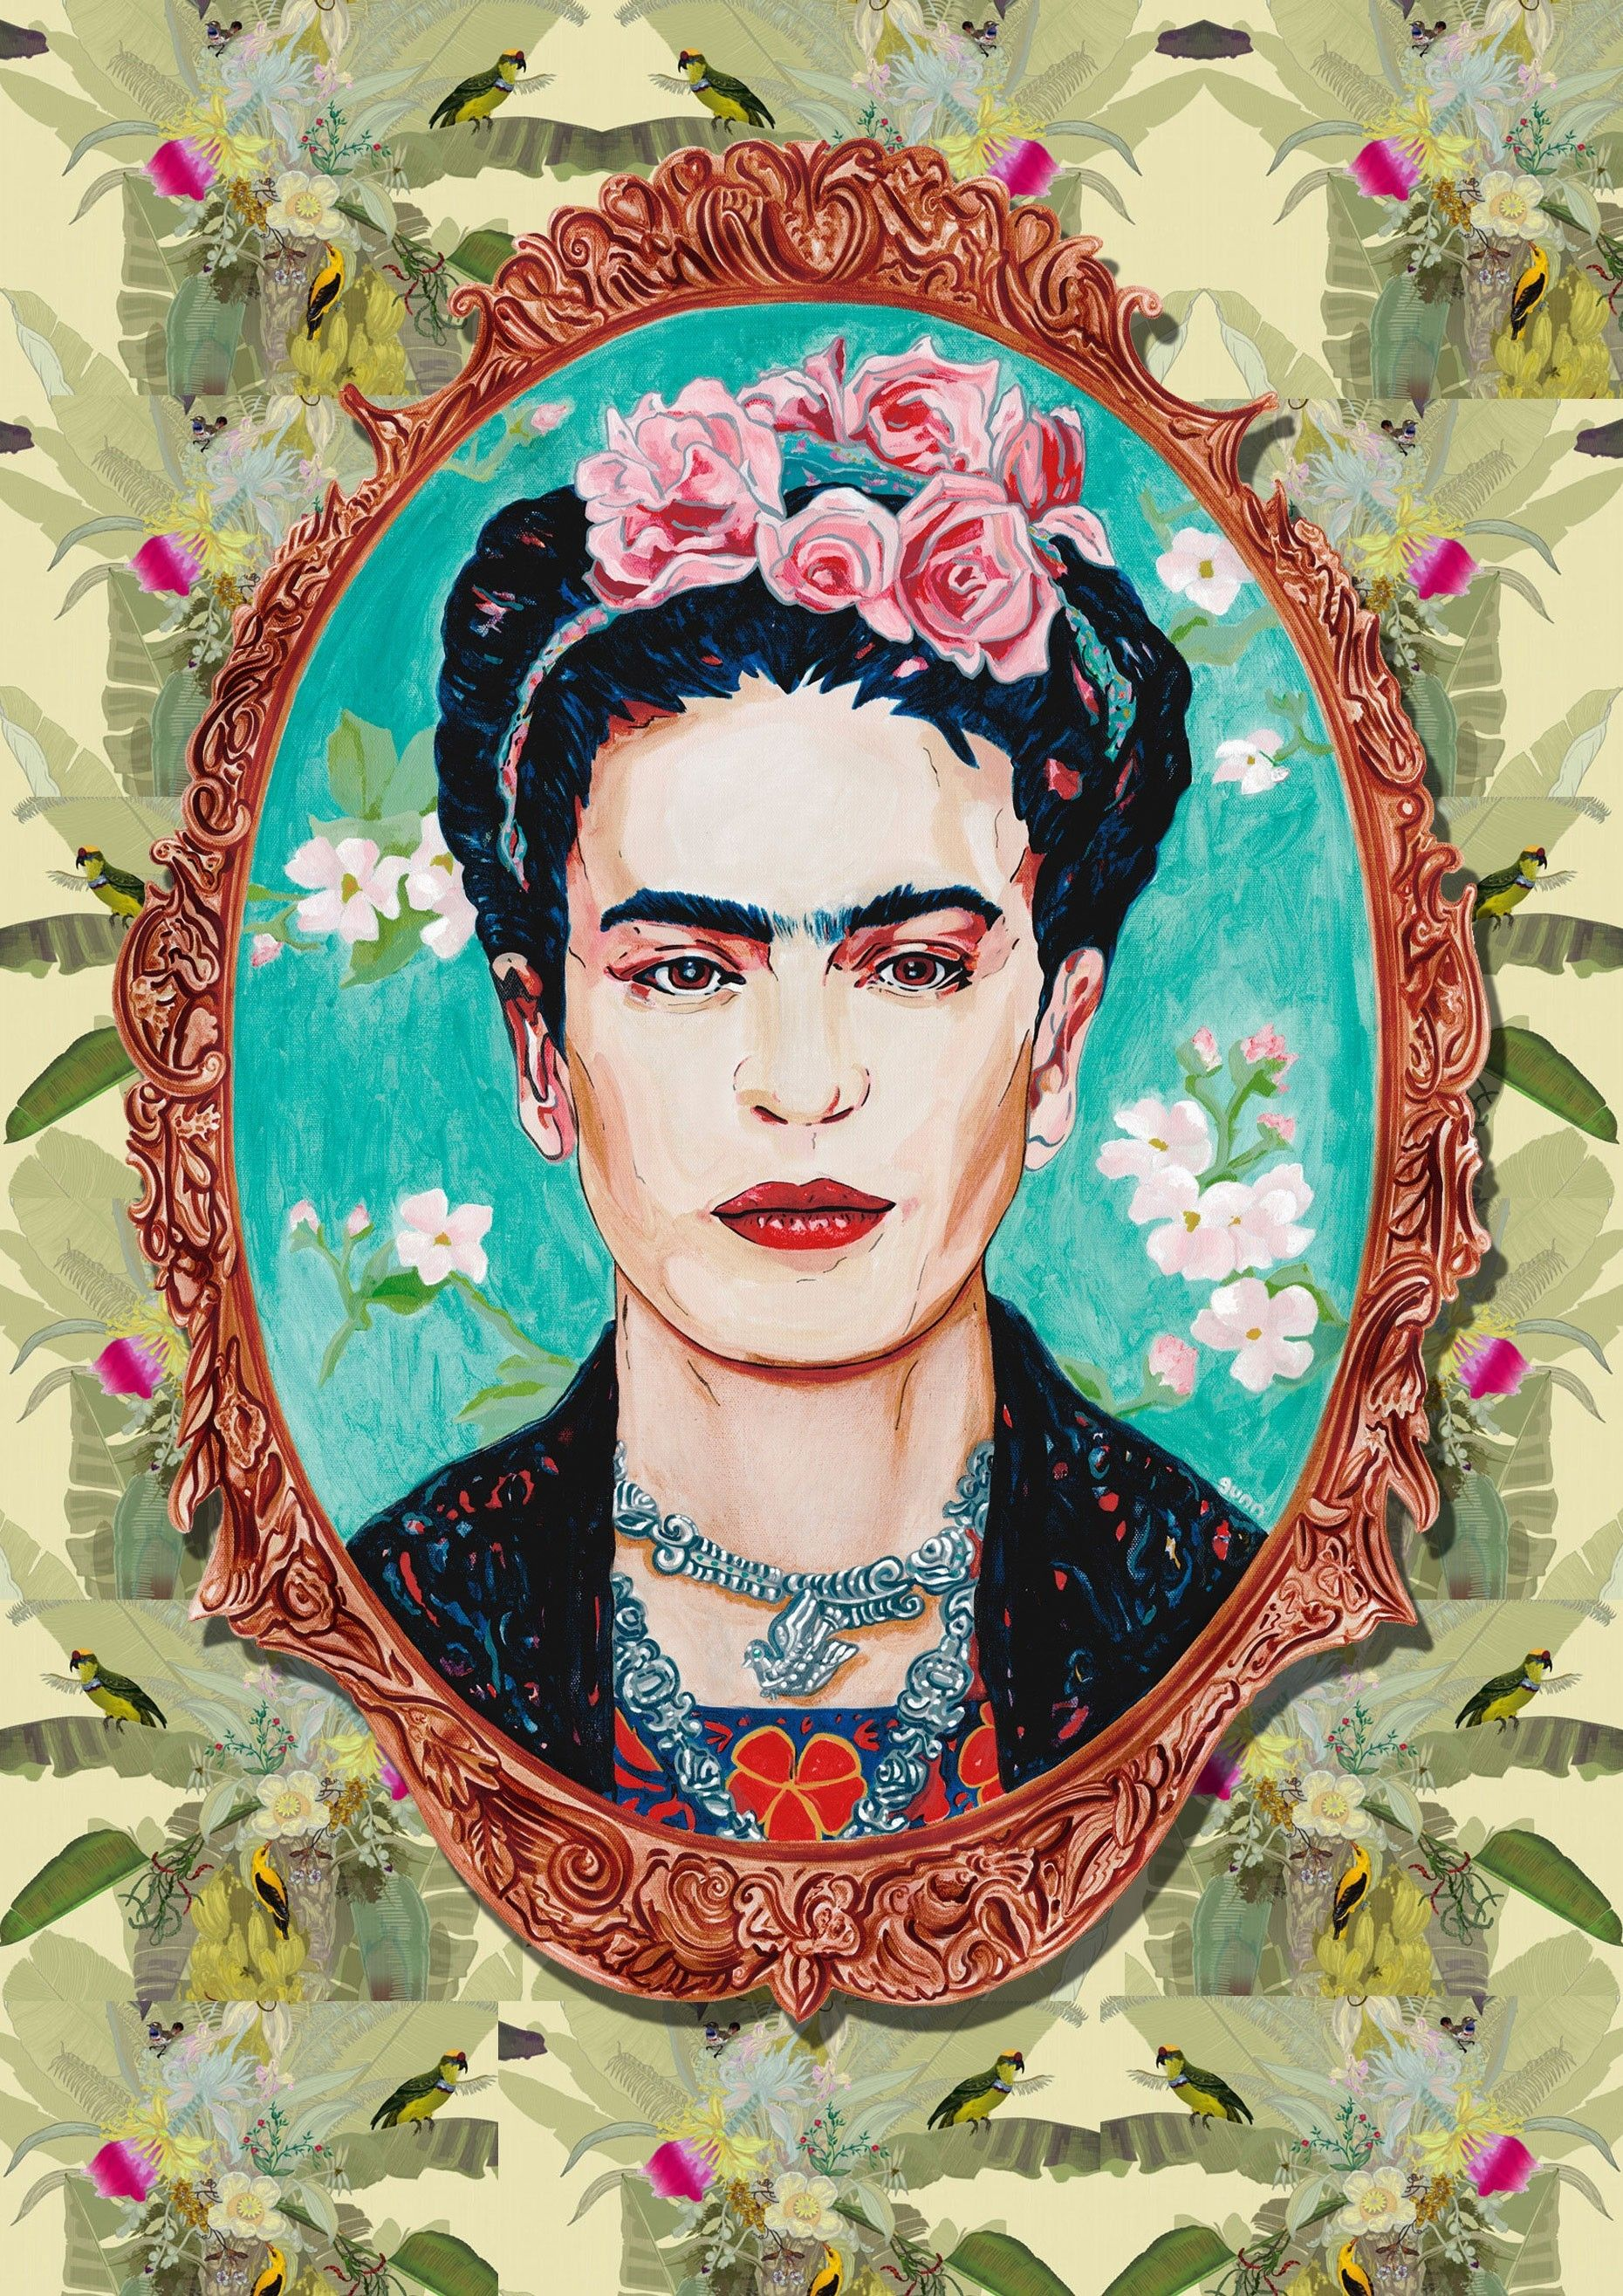 Frida Kahlo Pinturas Frida Kahlo Portrait Prints Click For More Images